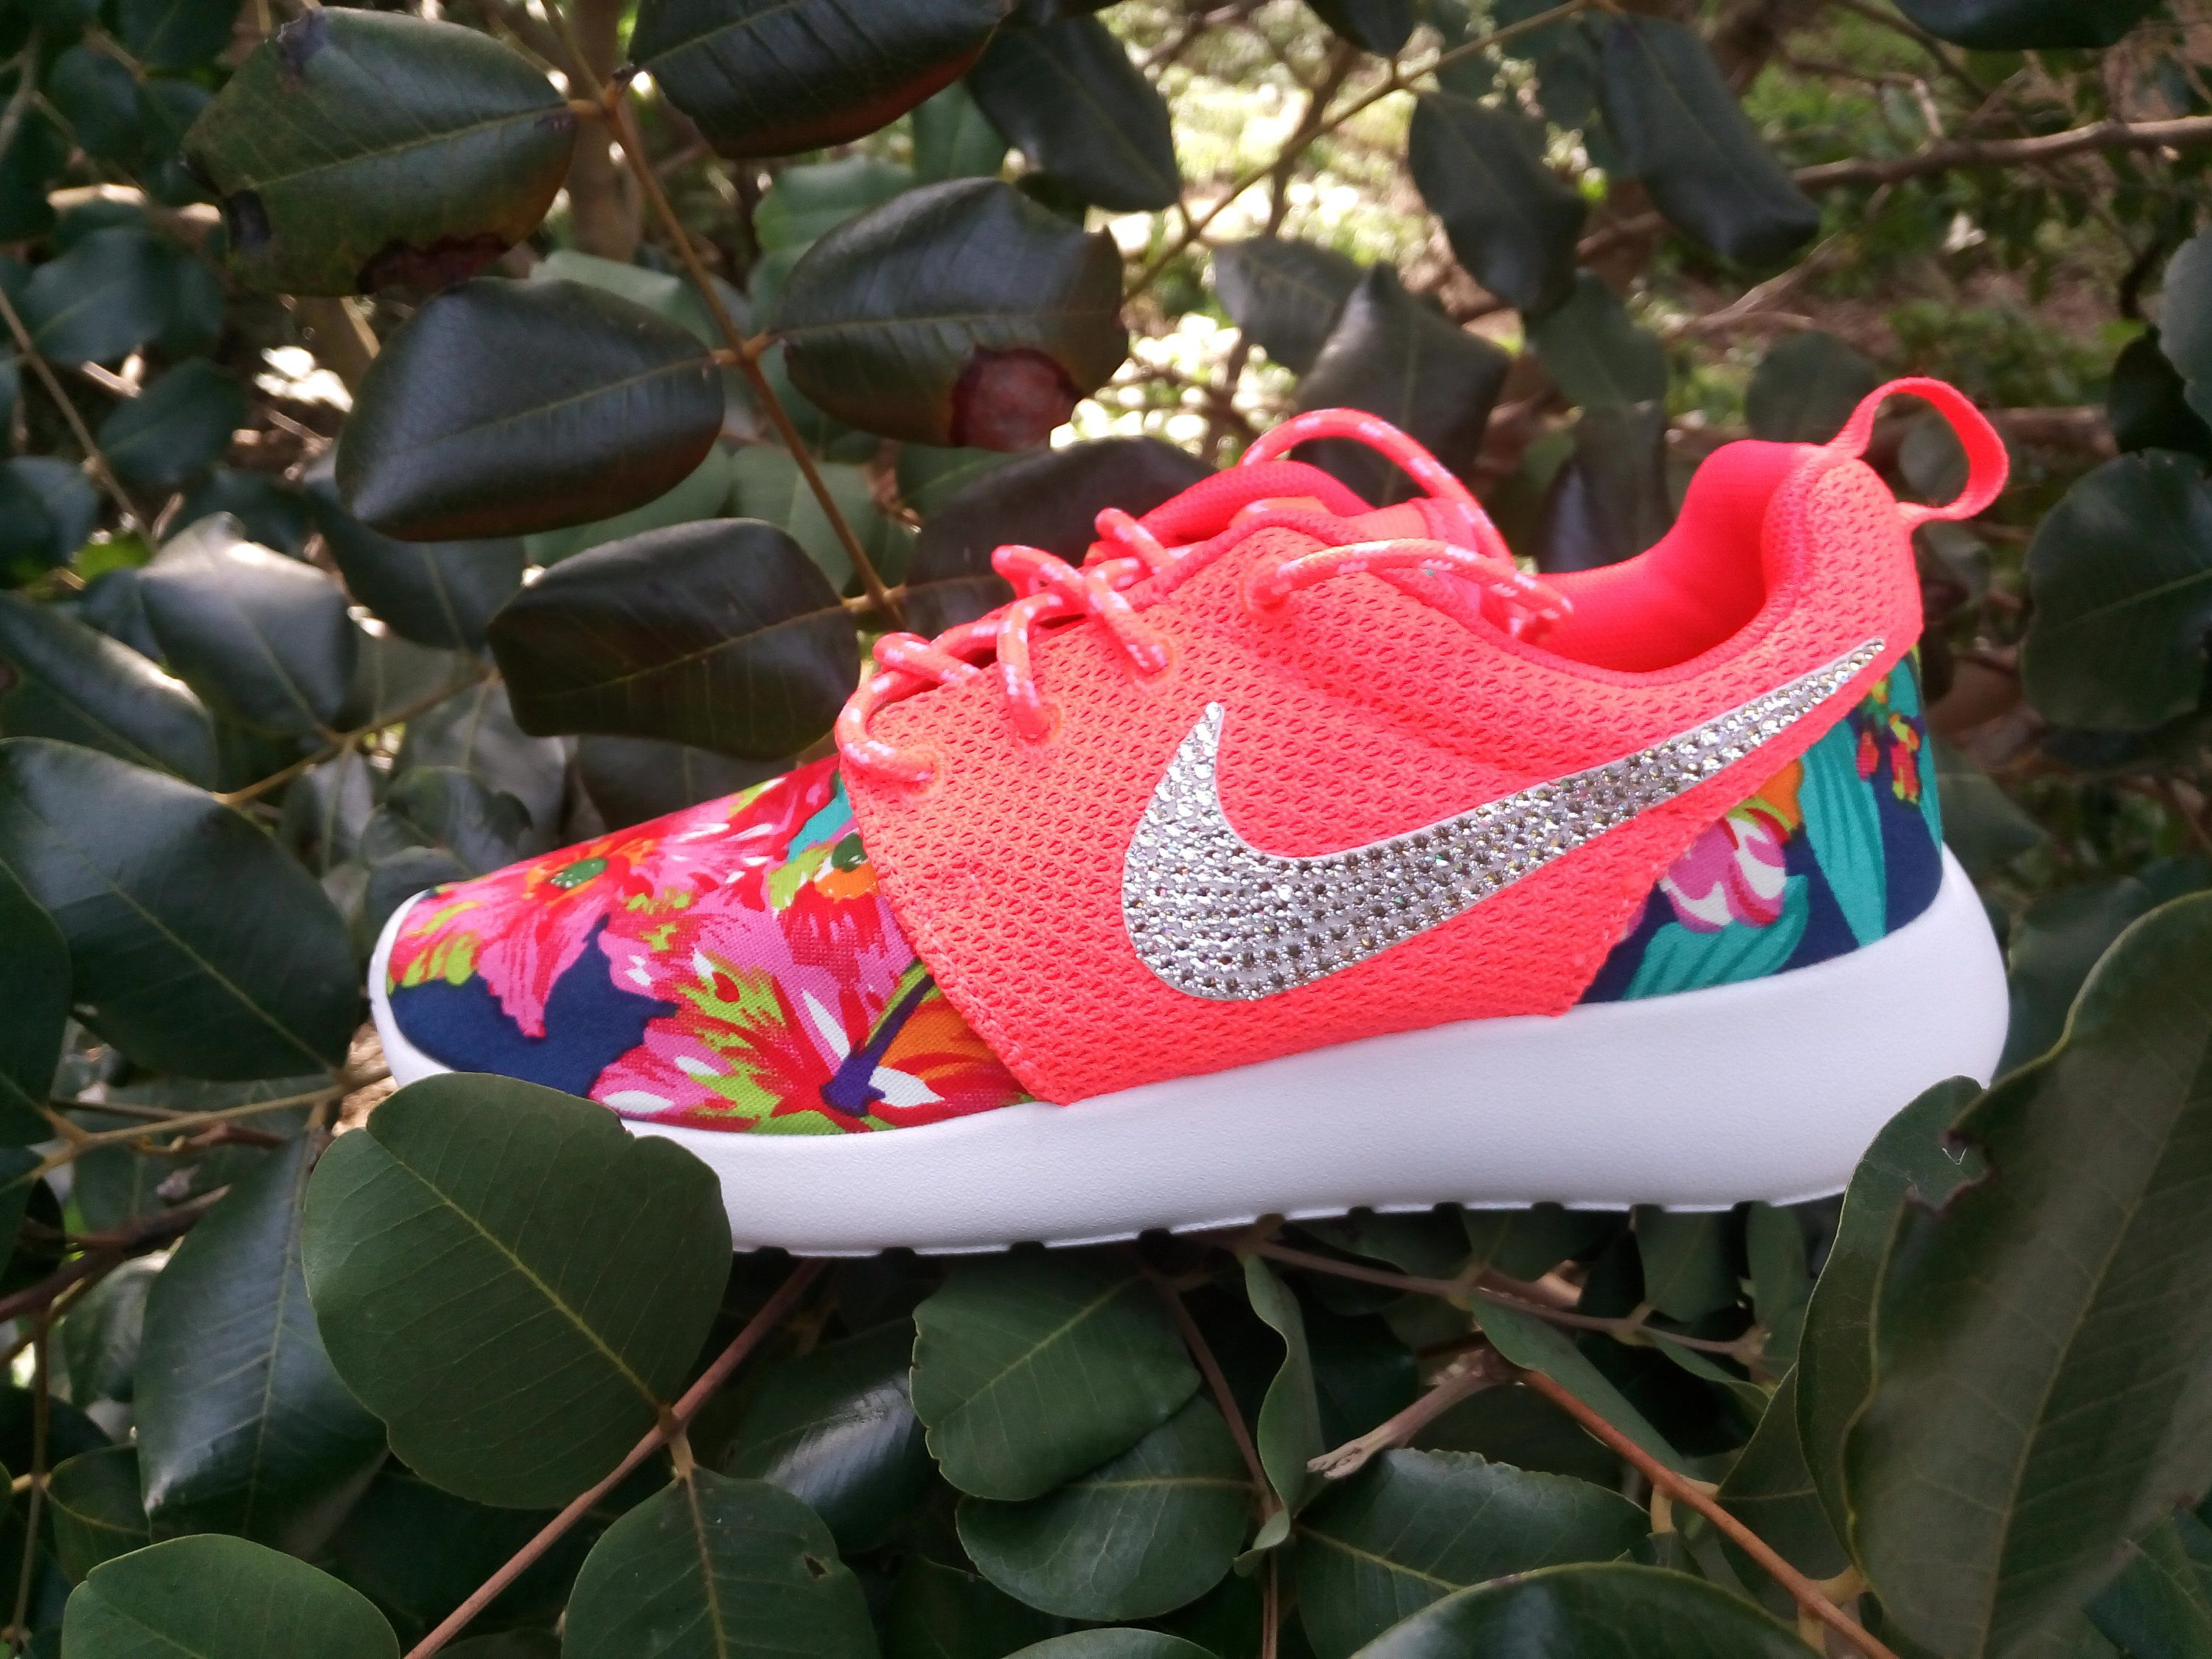 custom nike roshe run floral athletic shoes coral color customized with fabric  floral blinged with swarovski